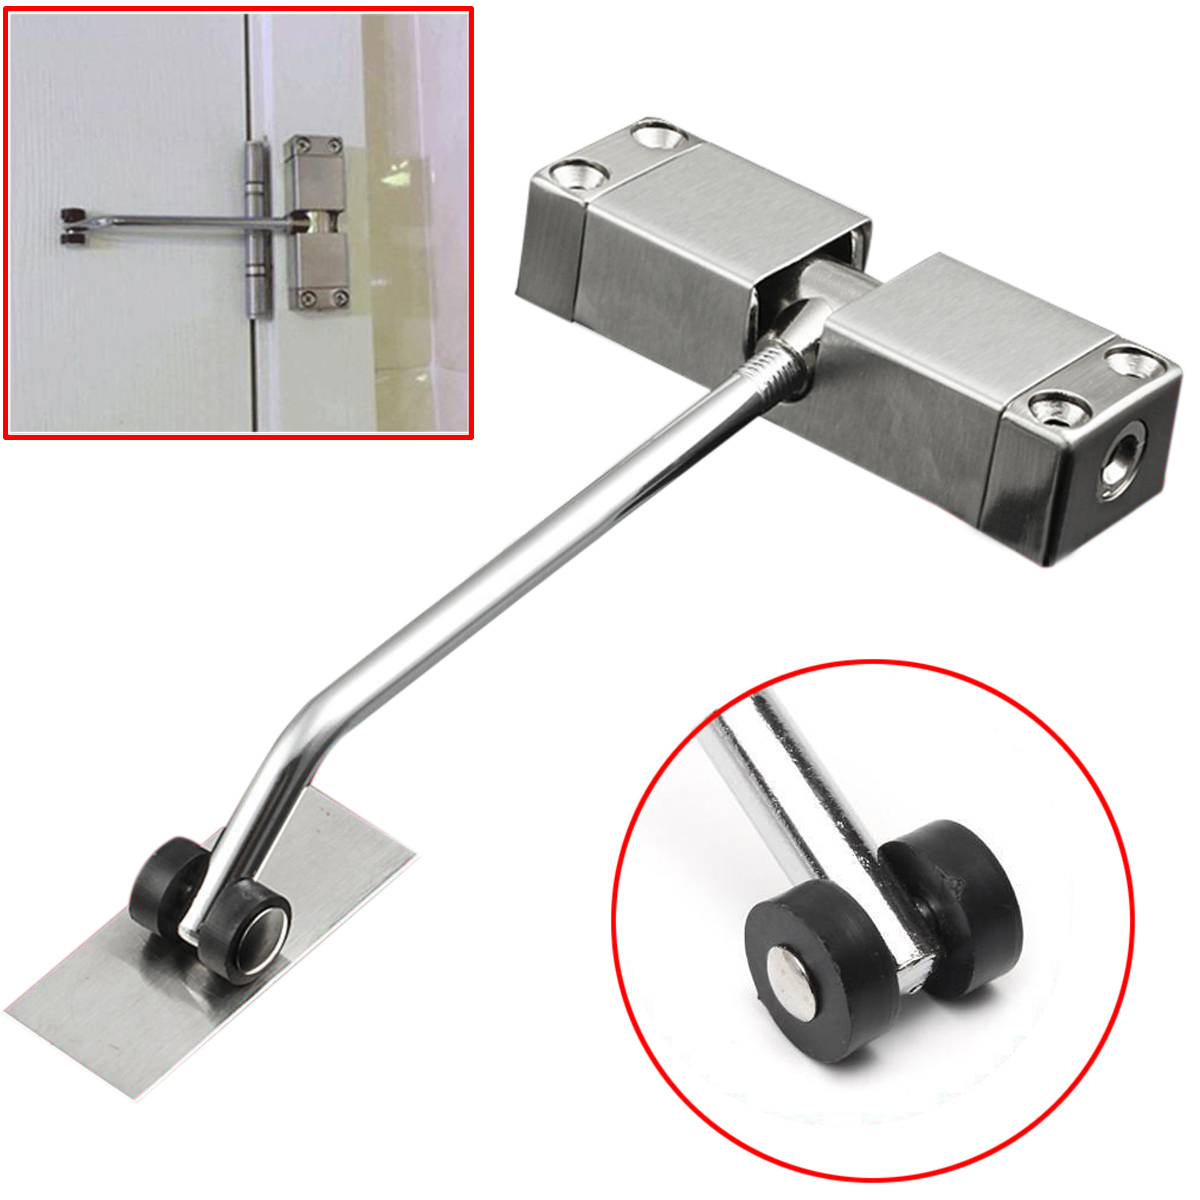 1pc Automatic Mounted Spring Door Closer Stainless Steel Adjustable Surface Door Closer 160x96x20mm 20 40kg adjustable high quality surface mounted door closer invisible buffer closed fire door access control